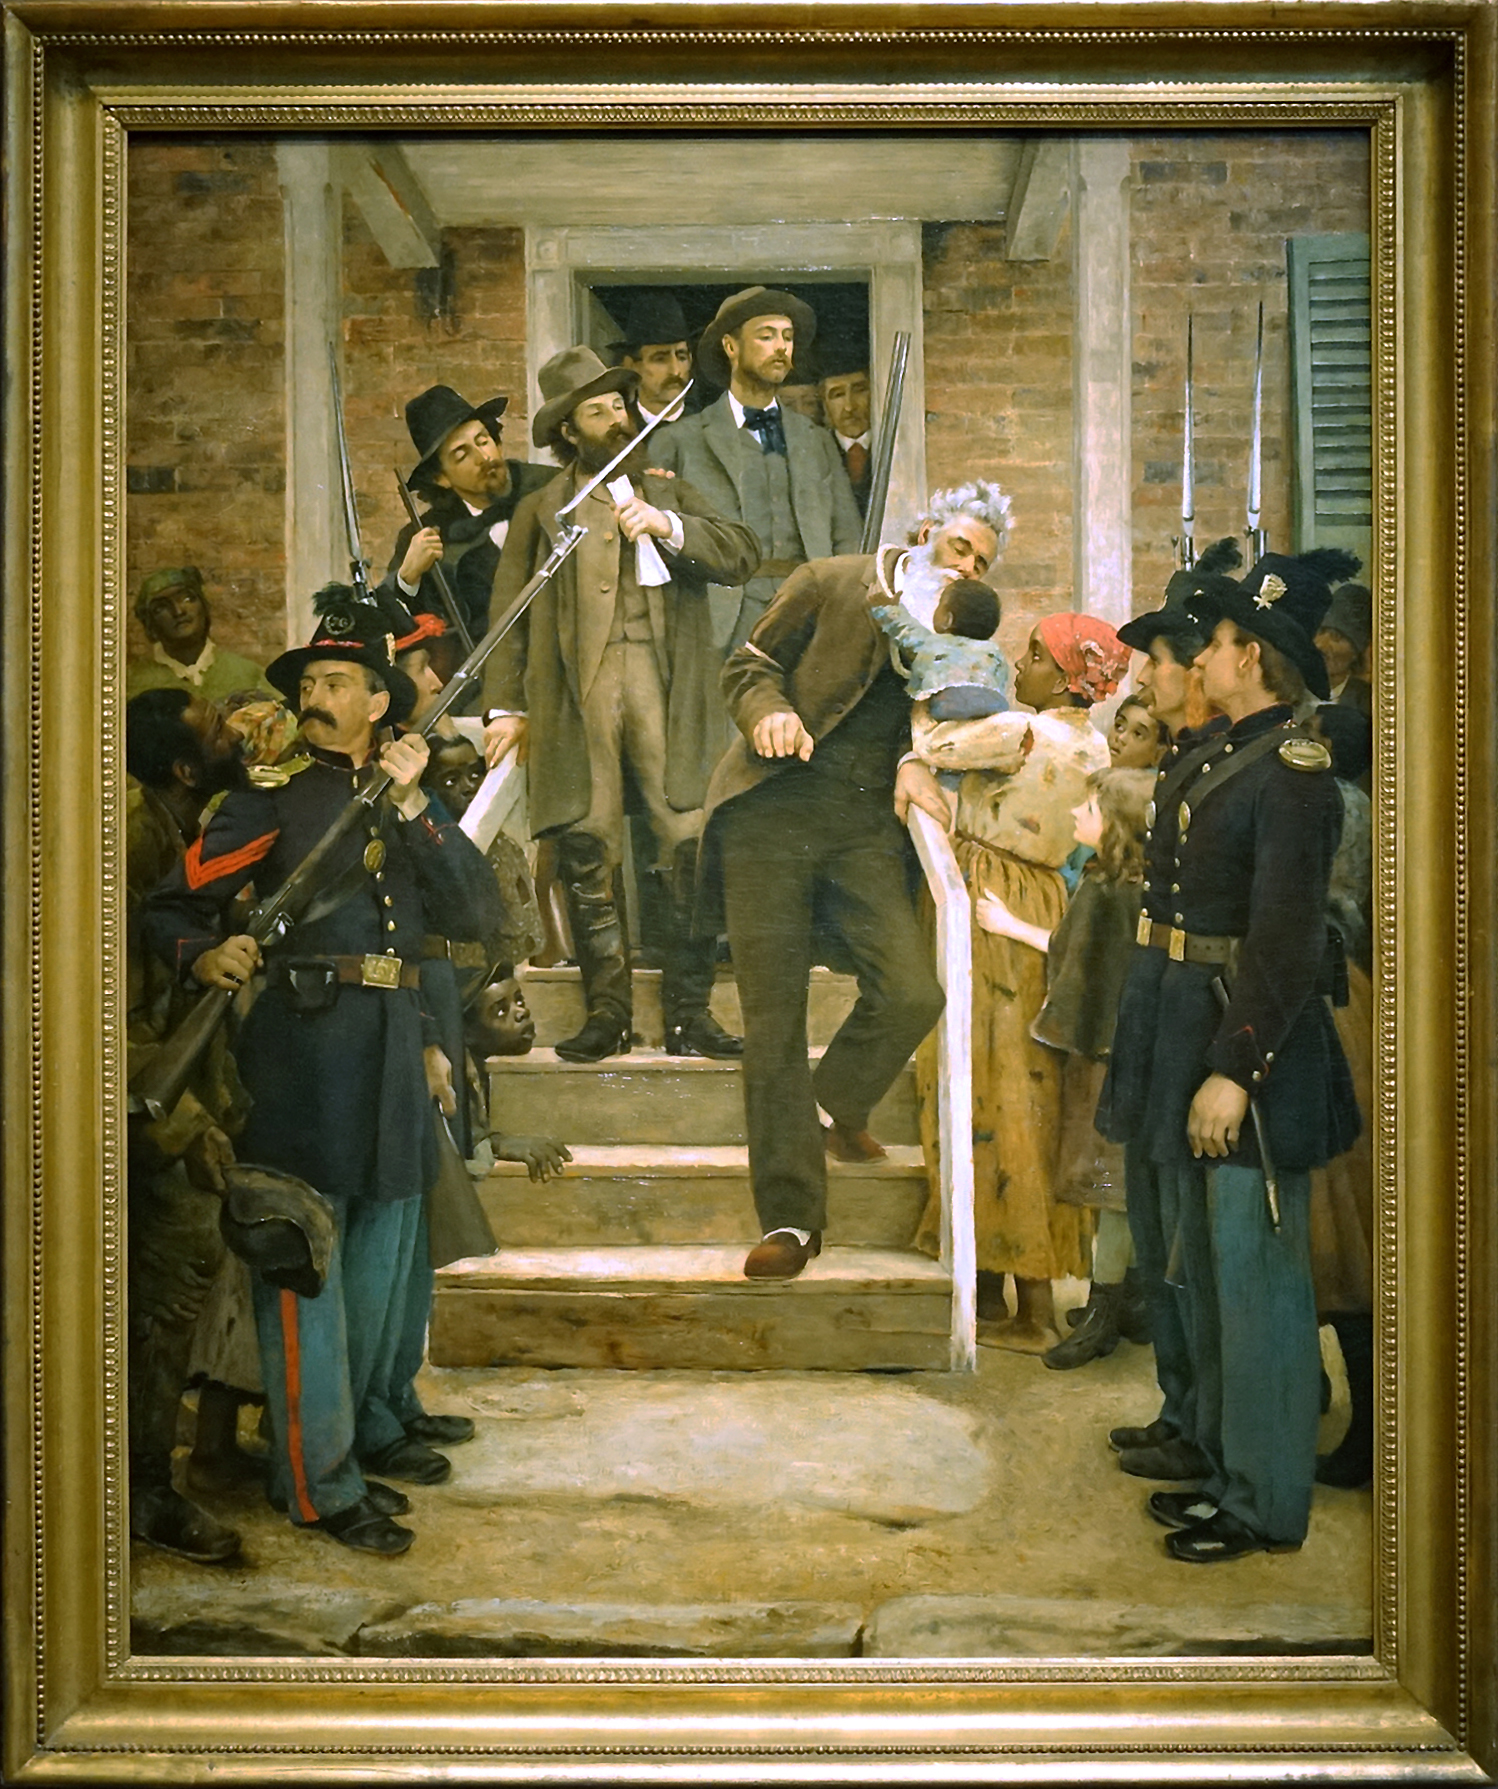 Thomas Hovenden, The Last Moments of John Brown, c. 1884, oil on canvas, 117.2 x 96.8 cm (de Young Museum, Fine Arts Museums of San Francisco, photo: Steven Zucker, CC BY-NC-SA 2.0)